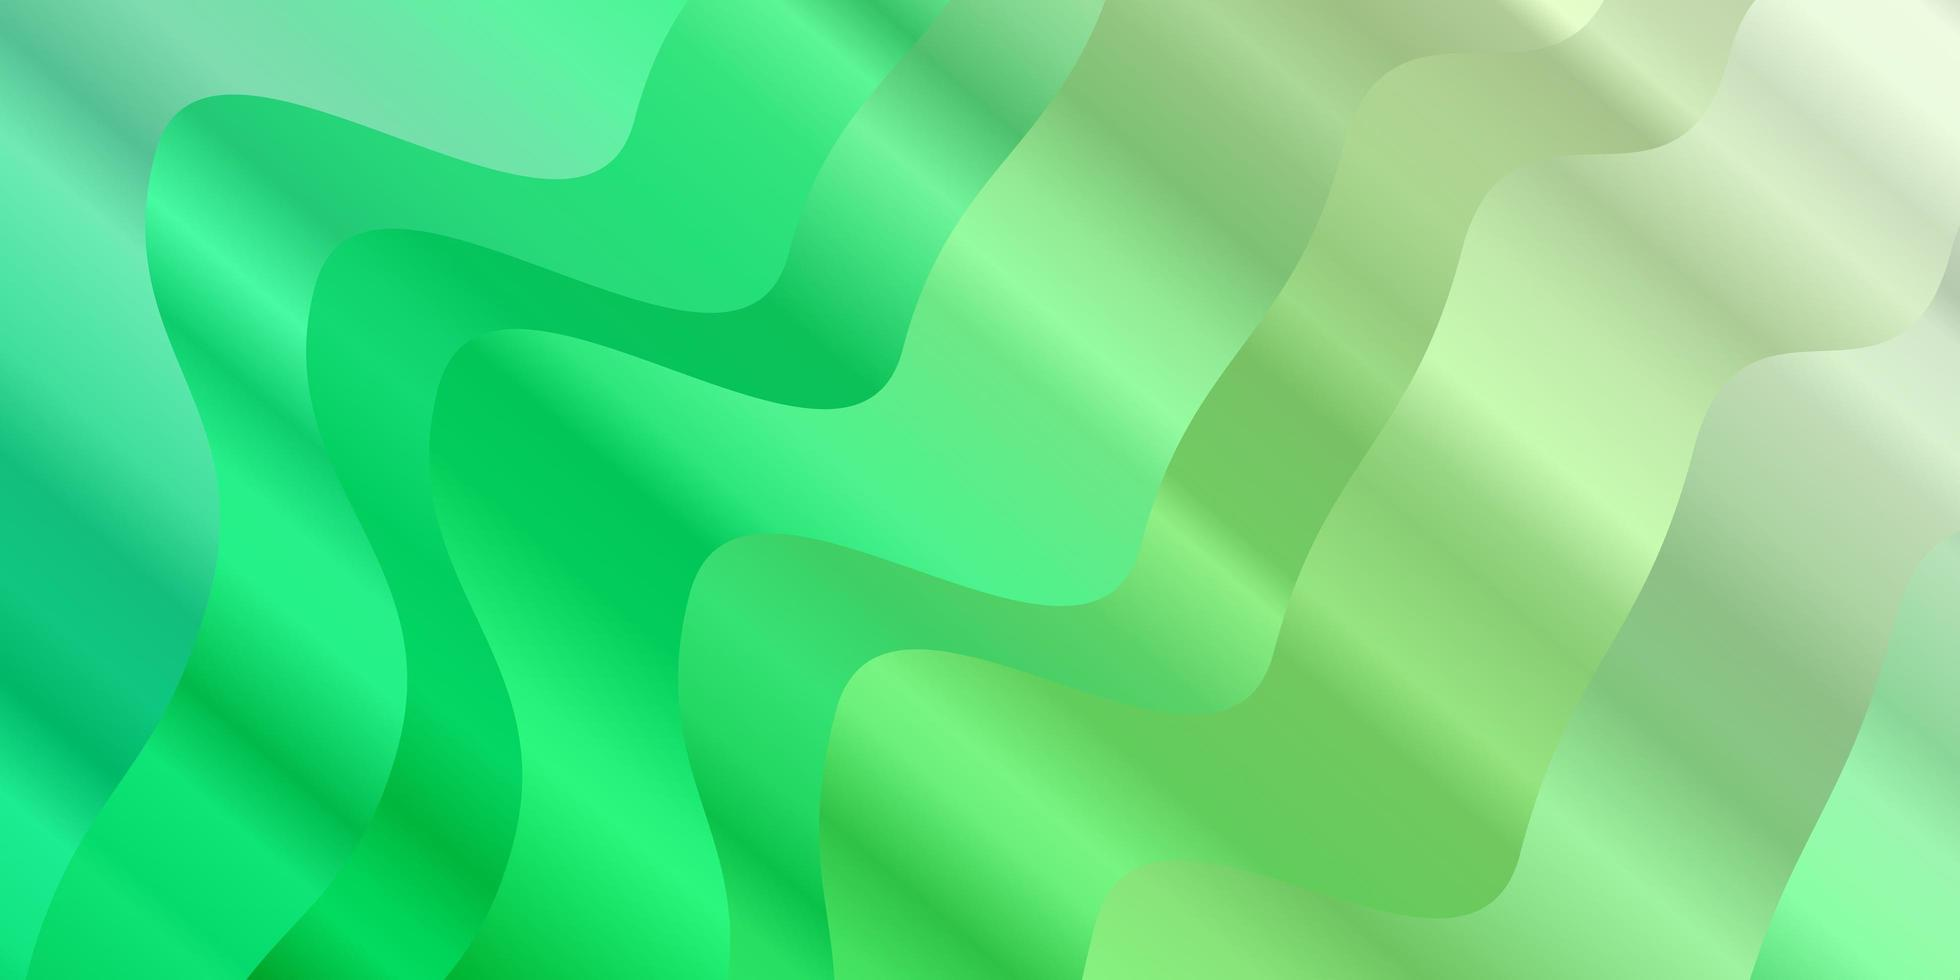 Light Green vector pattern with wry lines.